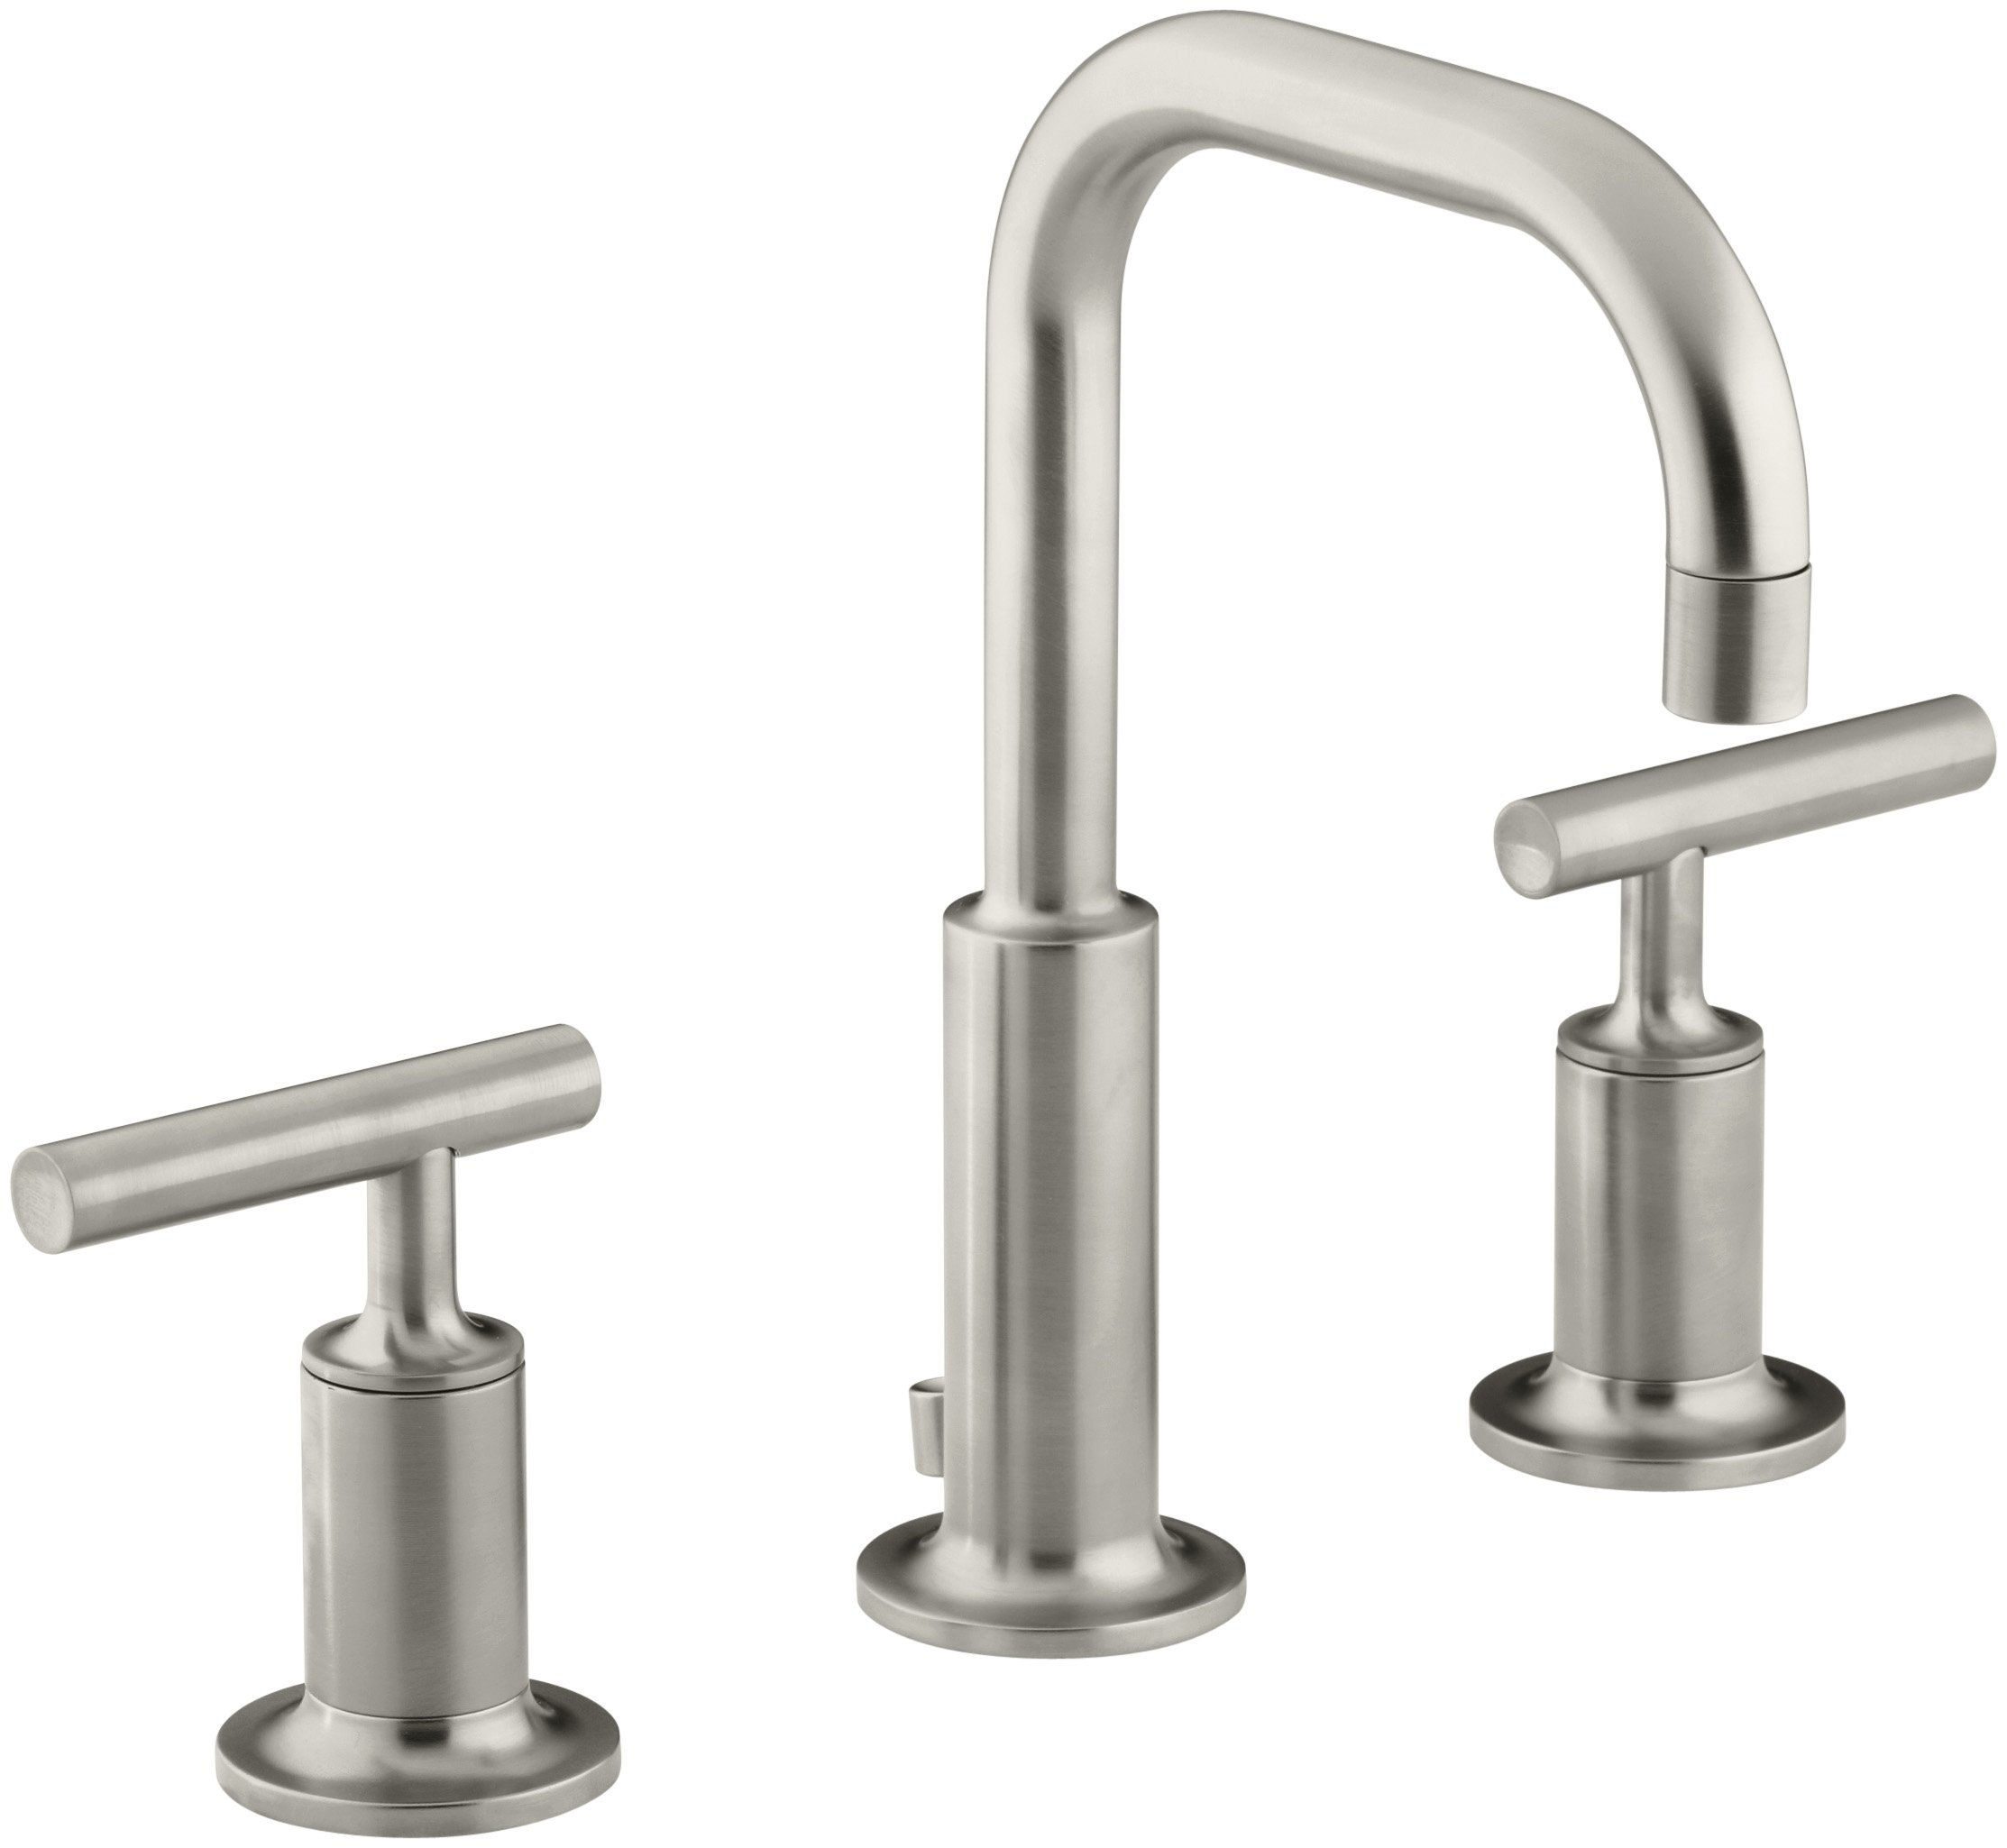 KOHLER K-14406-4-BN Purist Widespread Lavatory Faucet, Vibrant Brushed Nickel by Kohler